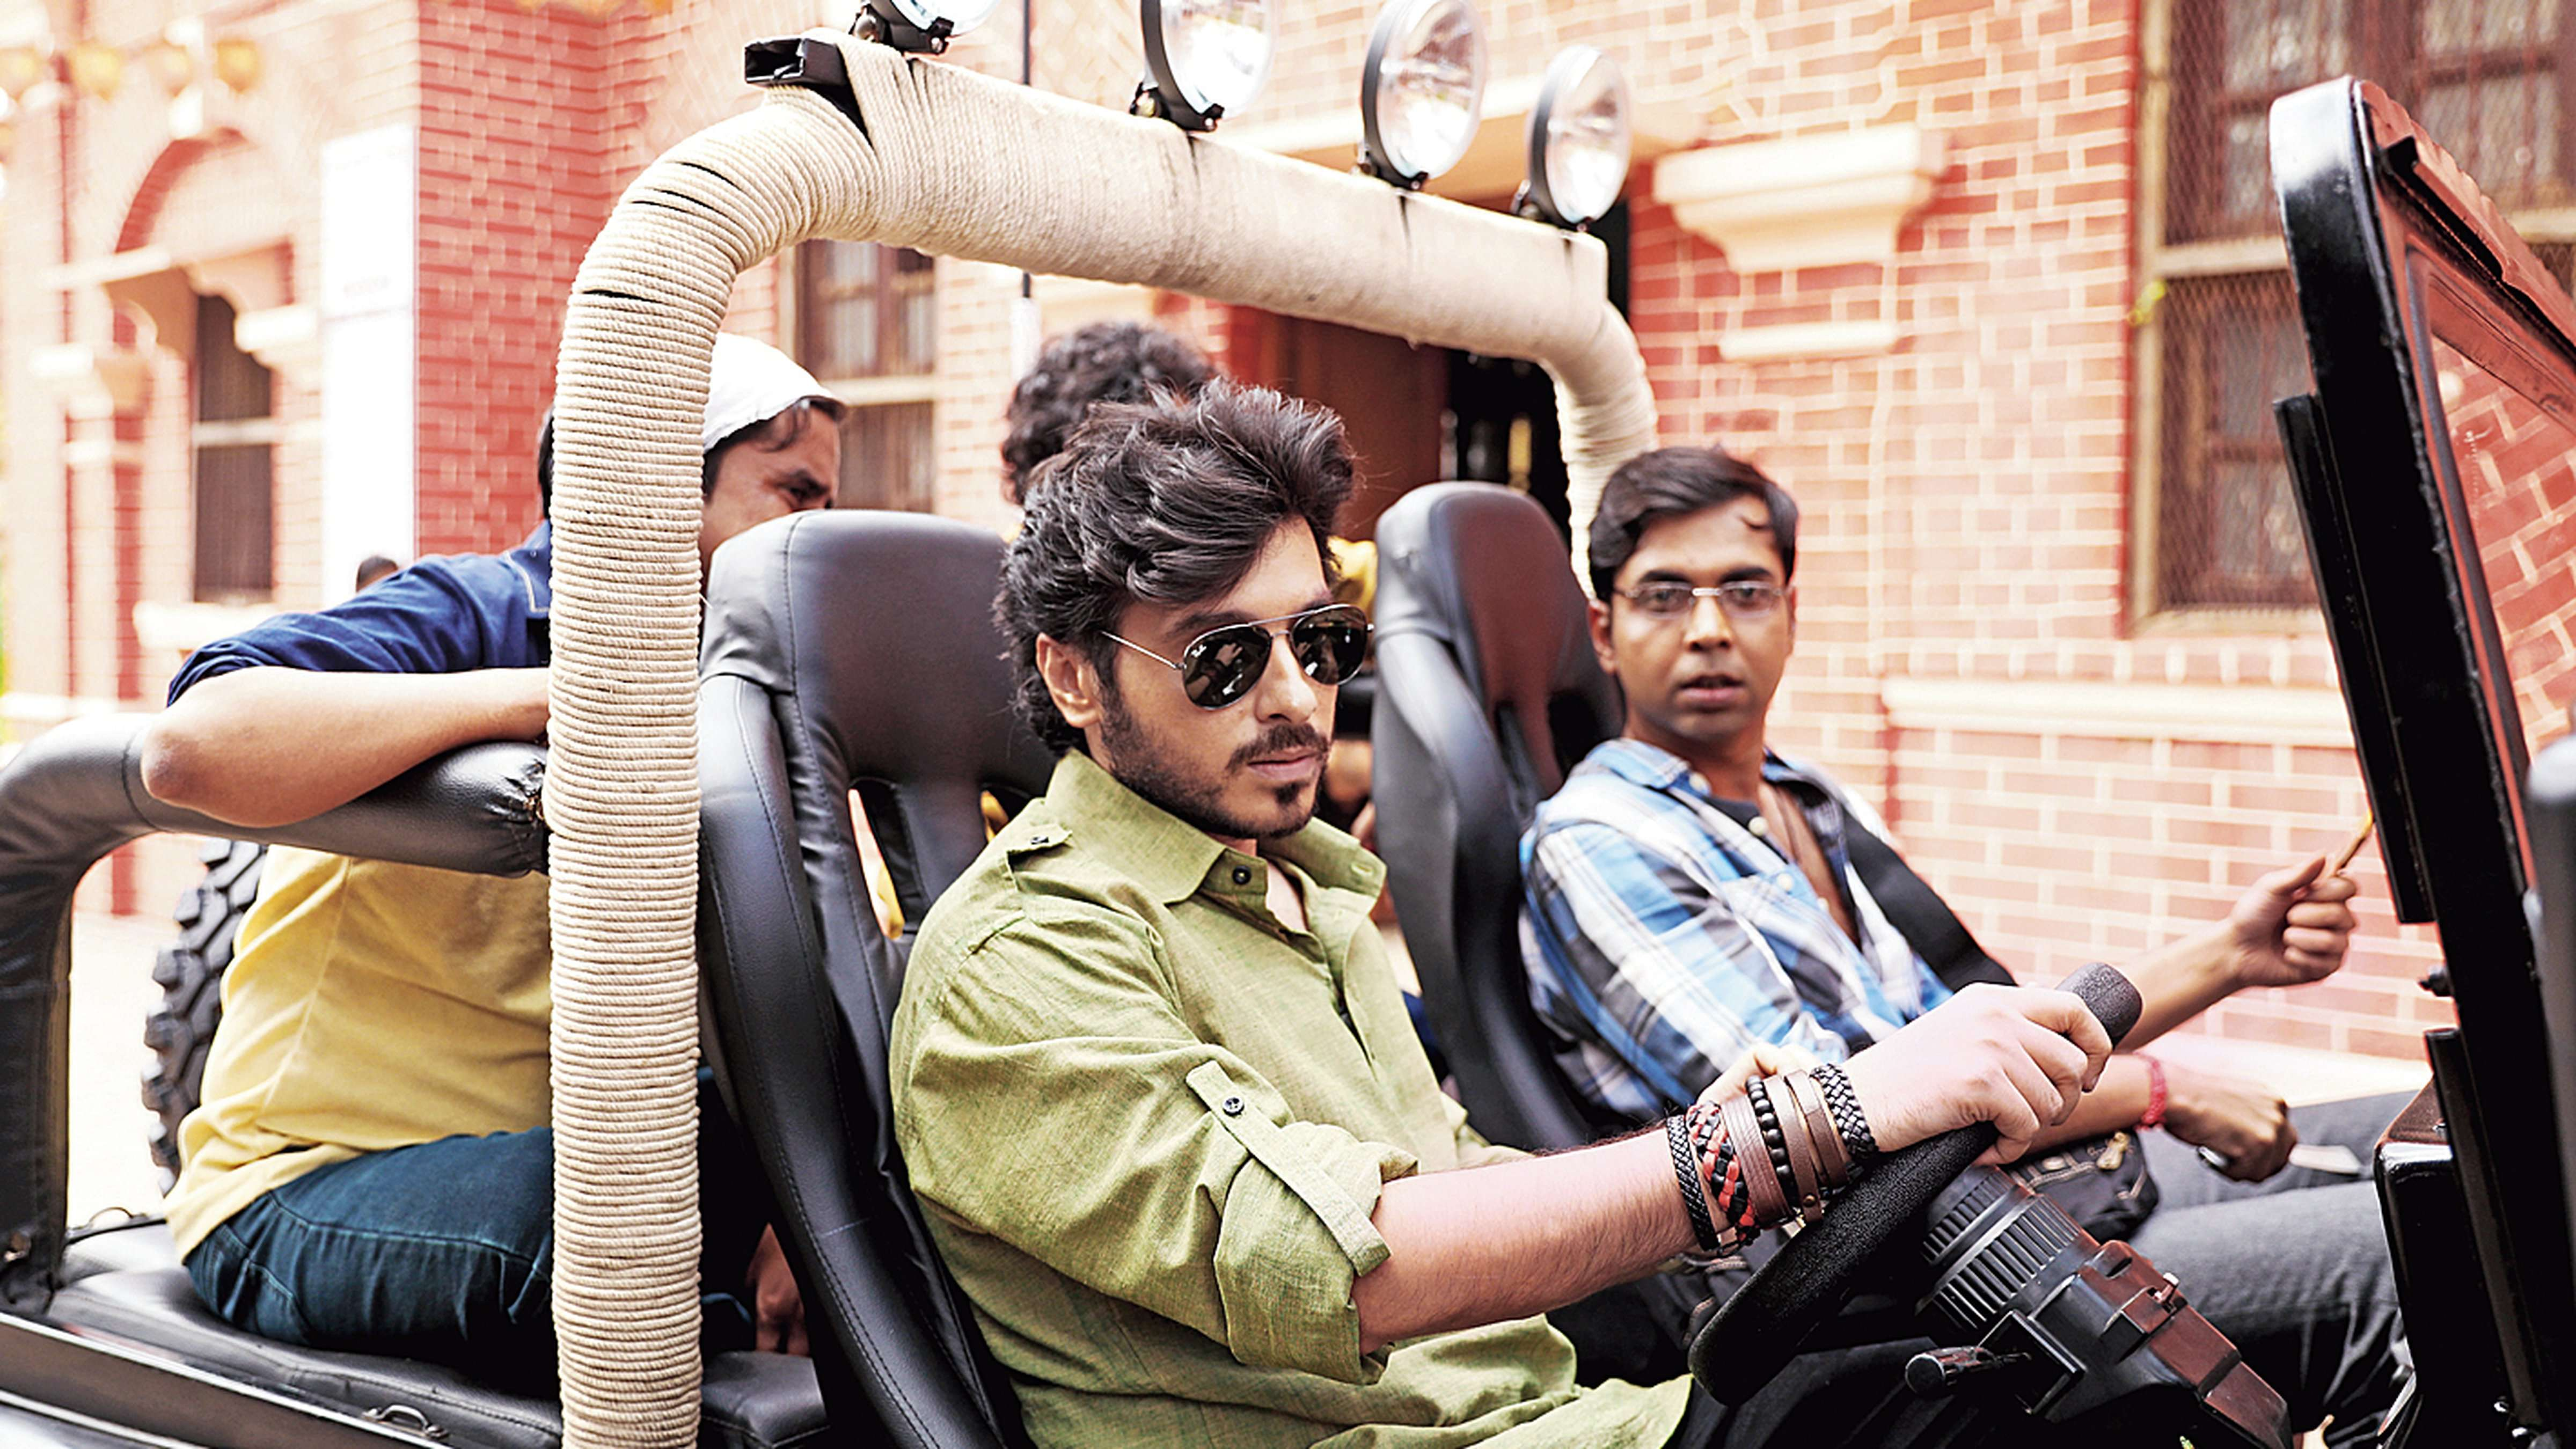 """Munna (Divyendu Sharma), who is such a central character with so much screen time (the series both begins and ends with a close-up of his face), rarely moves beyond the gangster-film stereotype of the insecure, entitled, beast-like """"prince"""" of a kingdom he has done nothing to make himself worthy of. Too many of his scenes felt tediously caricatured"""